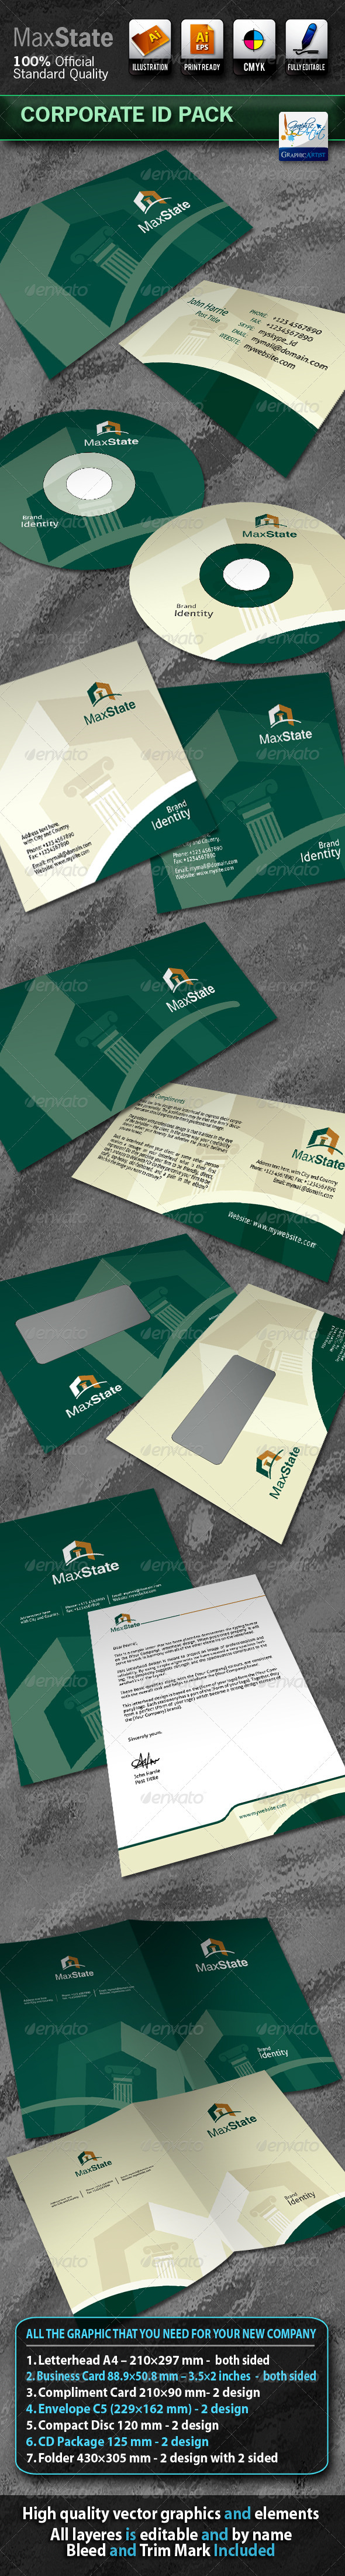 MaxState Business Corporate ID Pack With Logo